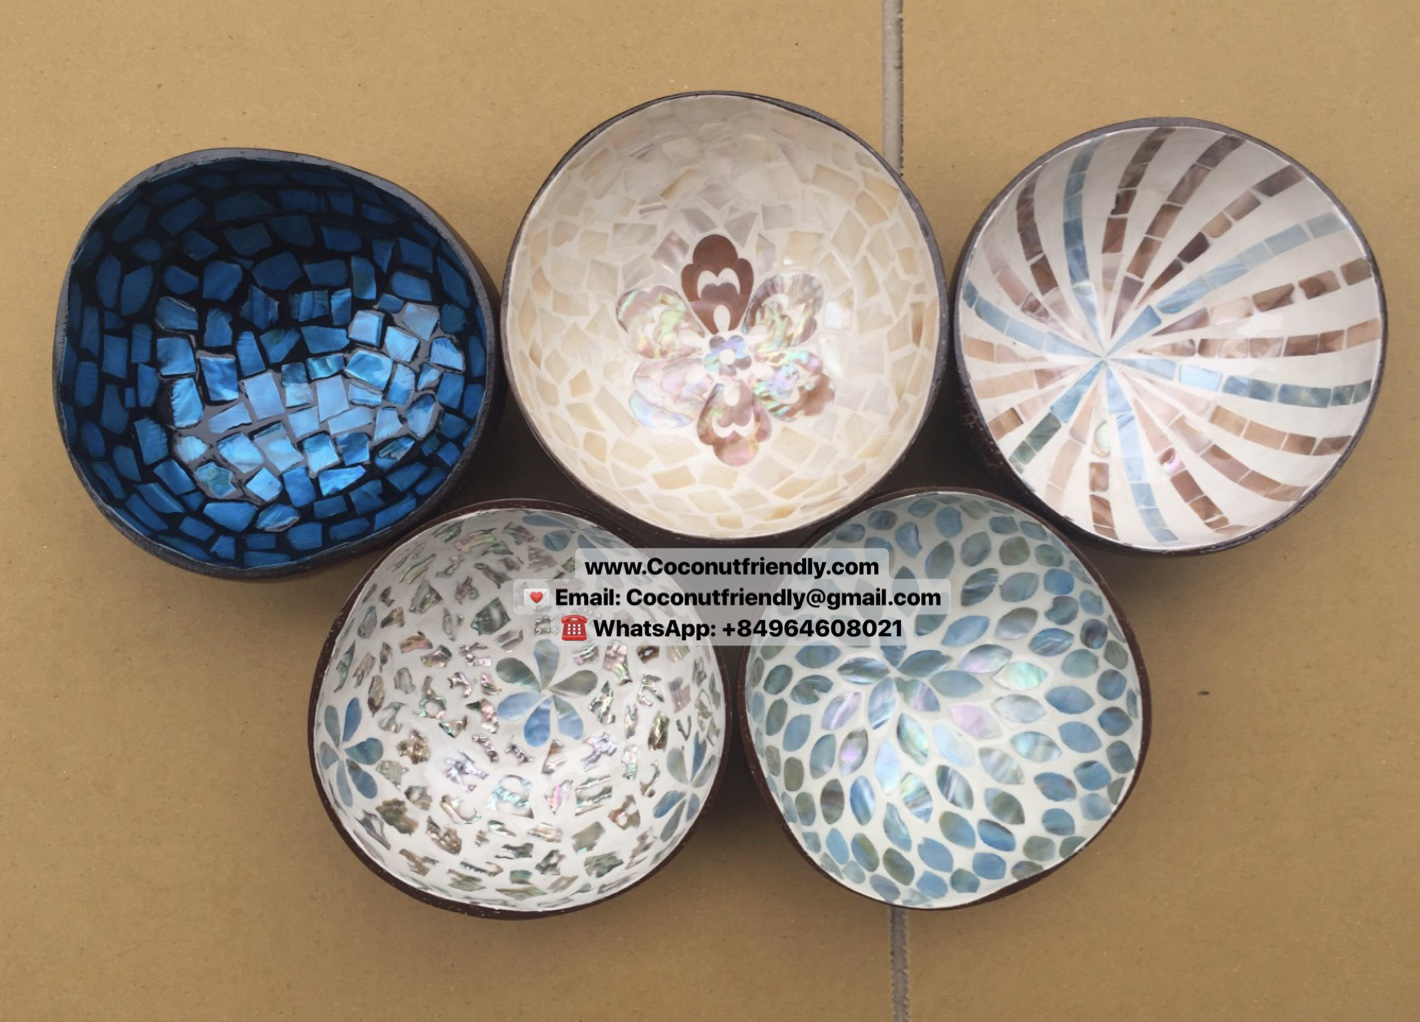 Handmade wholesale Seashell coconut lacquer bowls from Vietnam